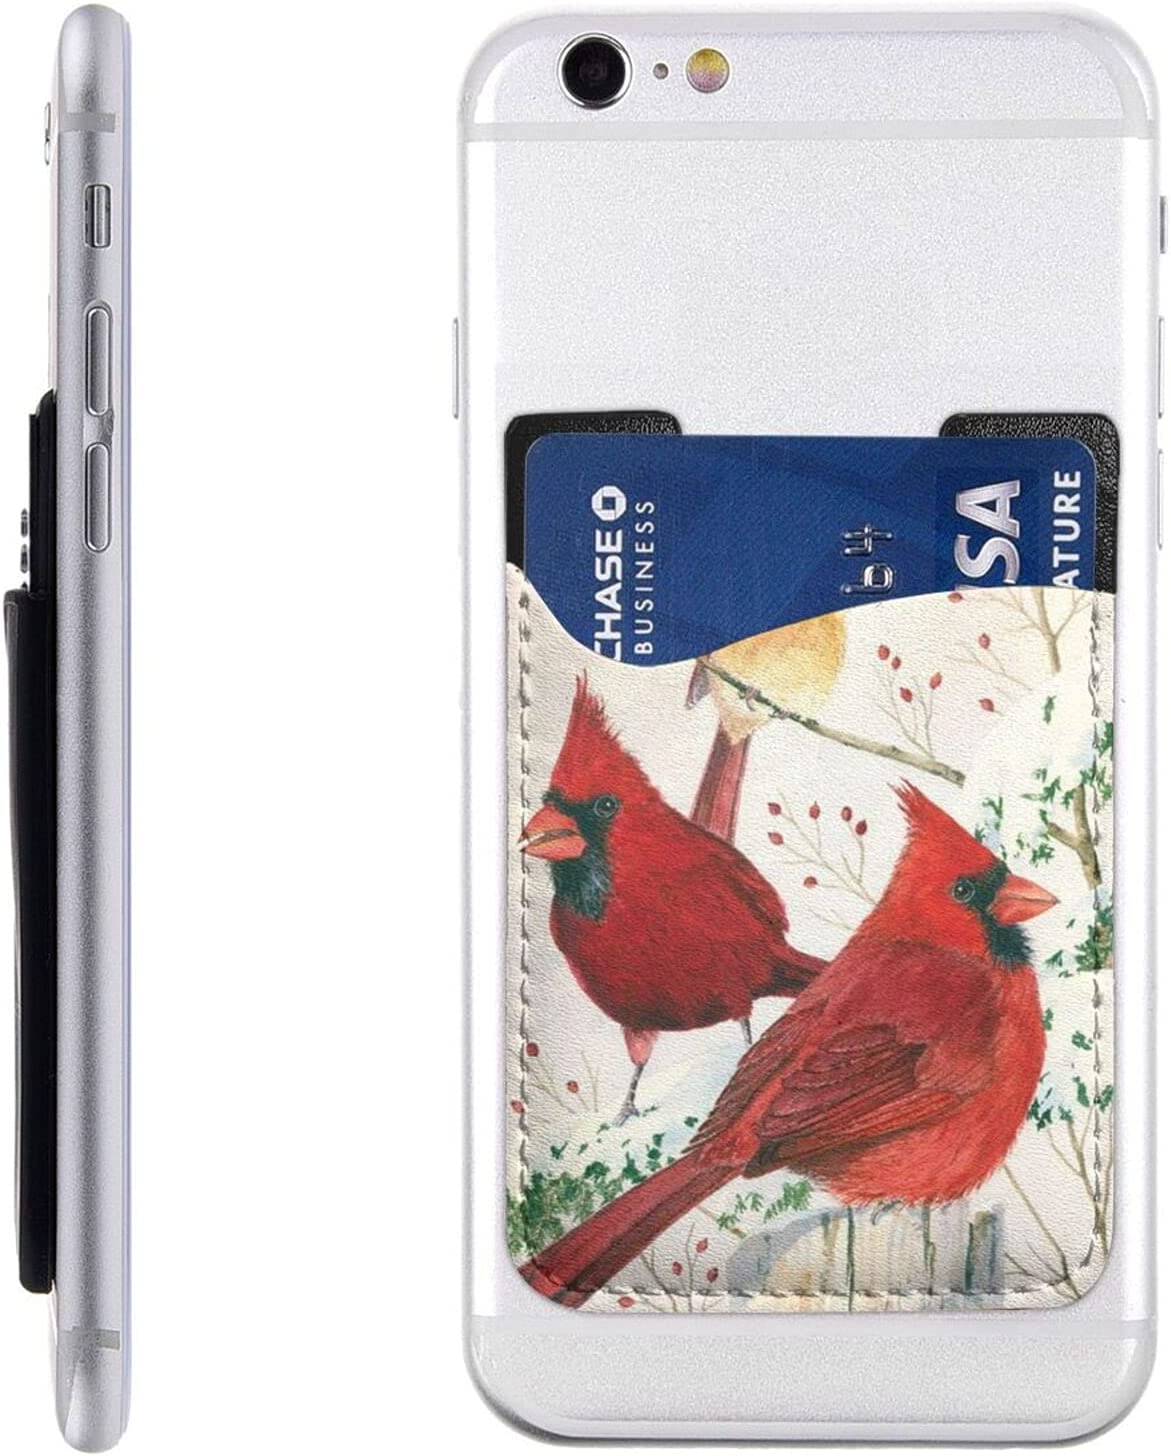 Red Birds Phone Card Holder Slee Cell Inventory cleanup selling San Diego Mall sale Wallet On Stick